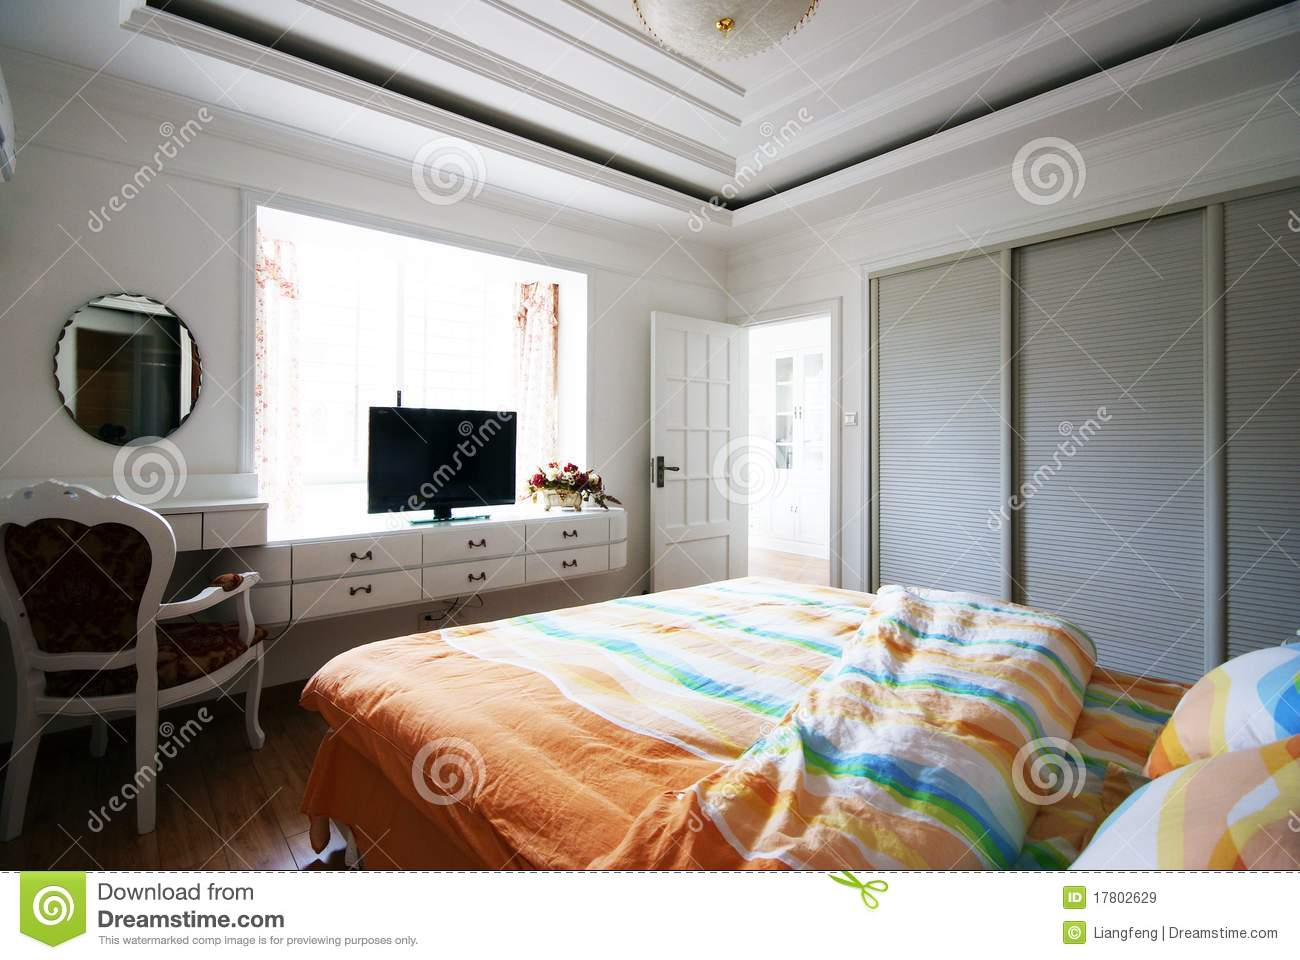 new room decoration stock image image of background